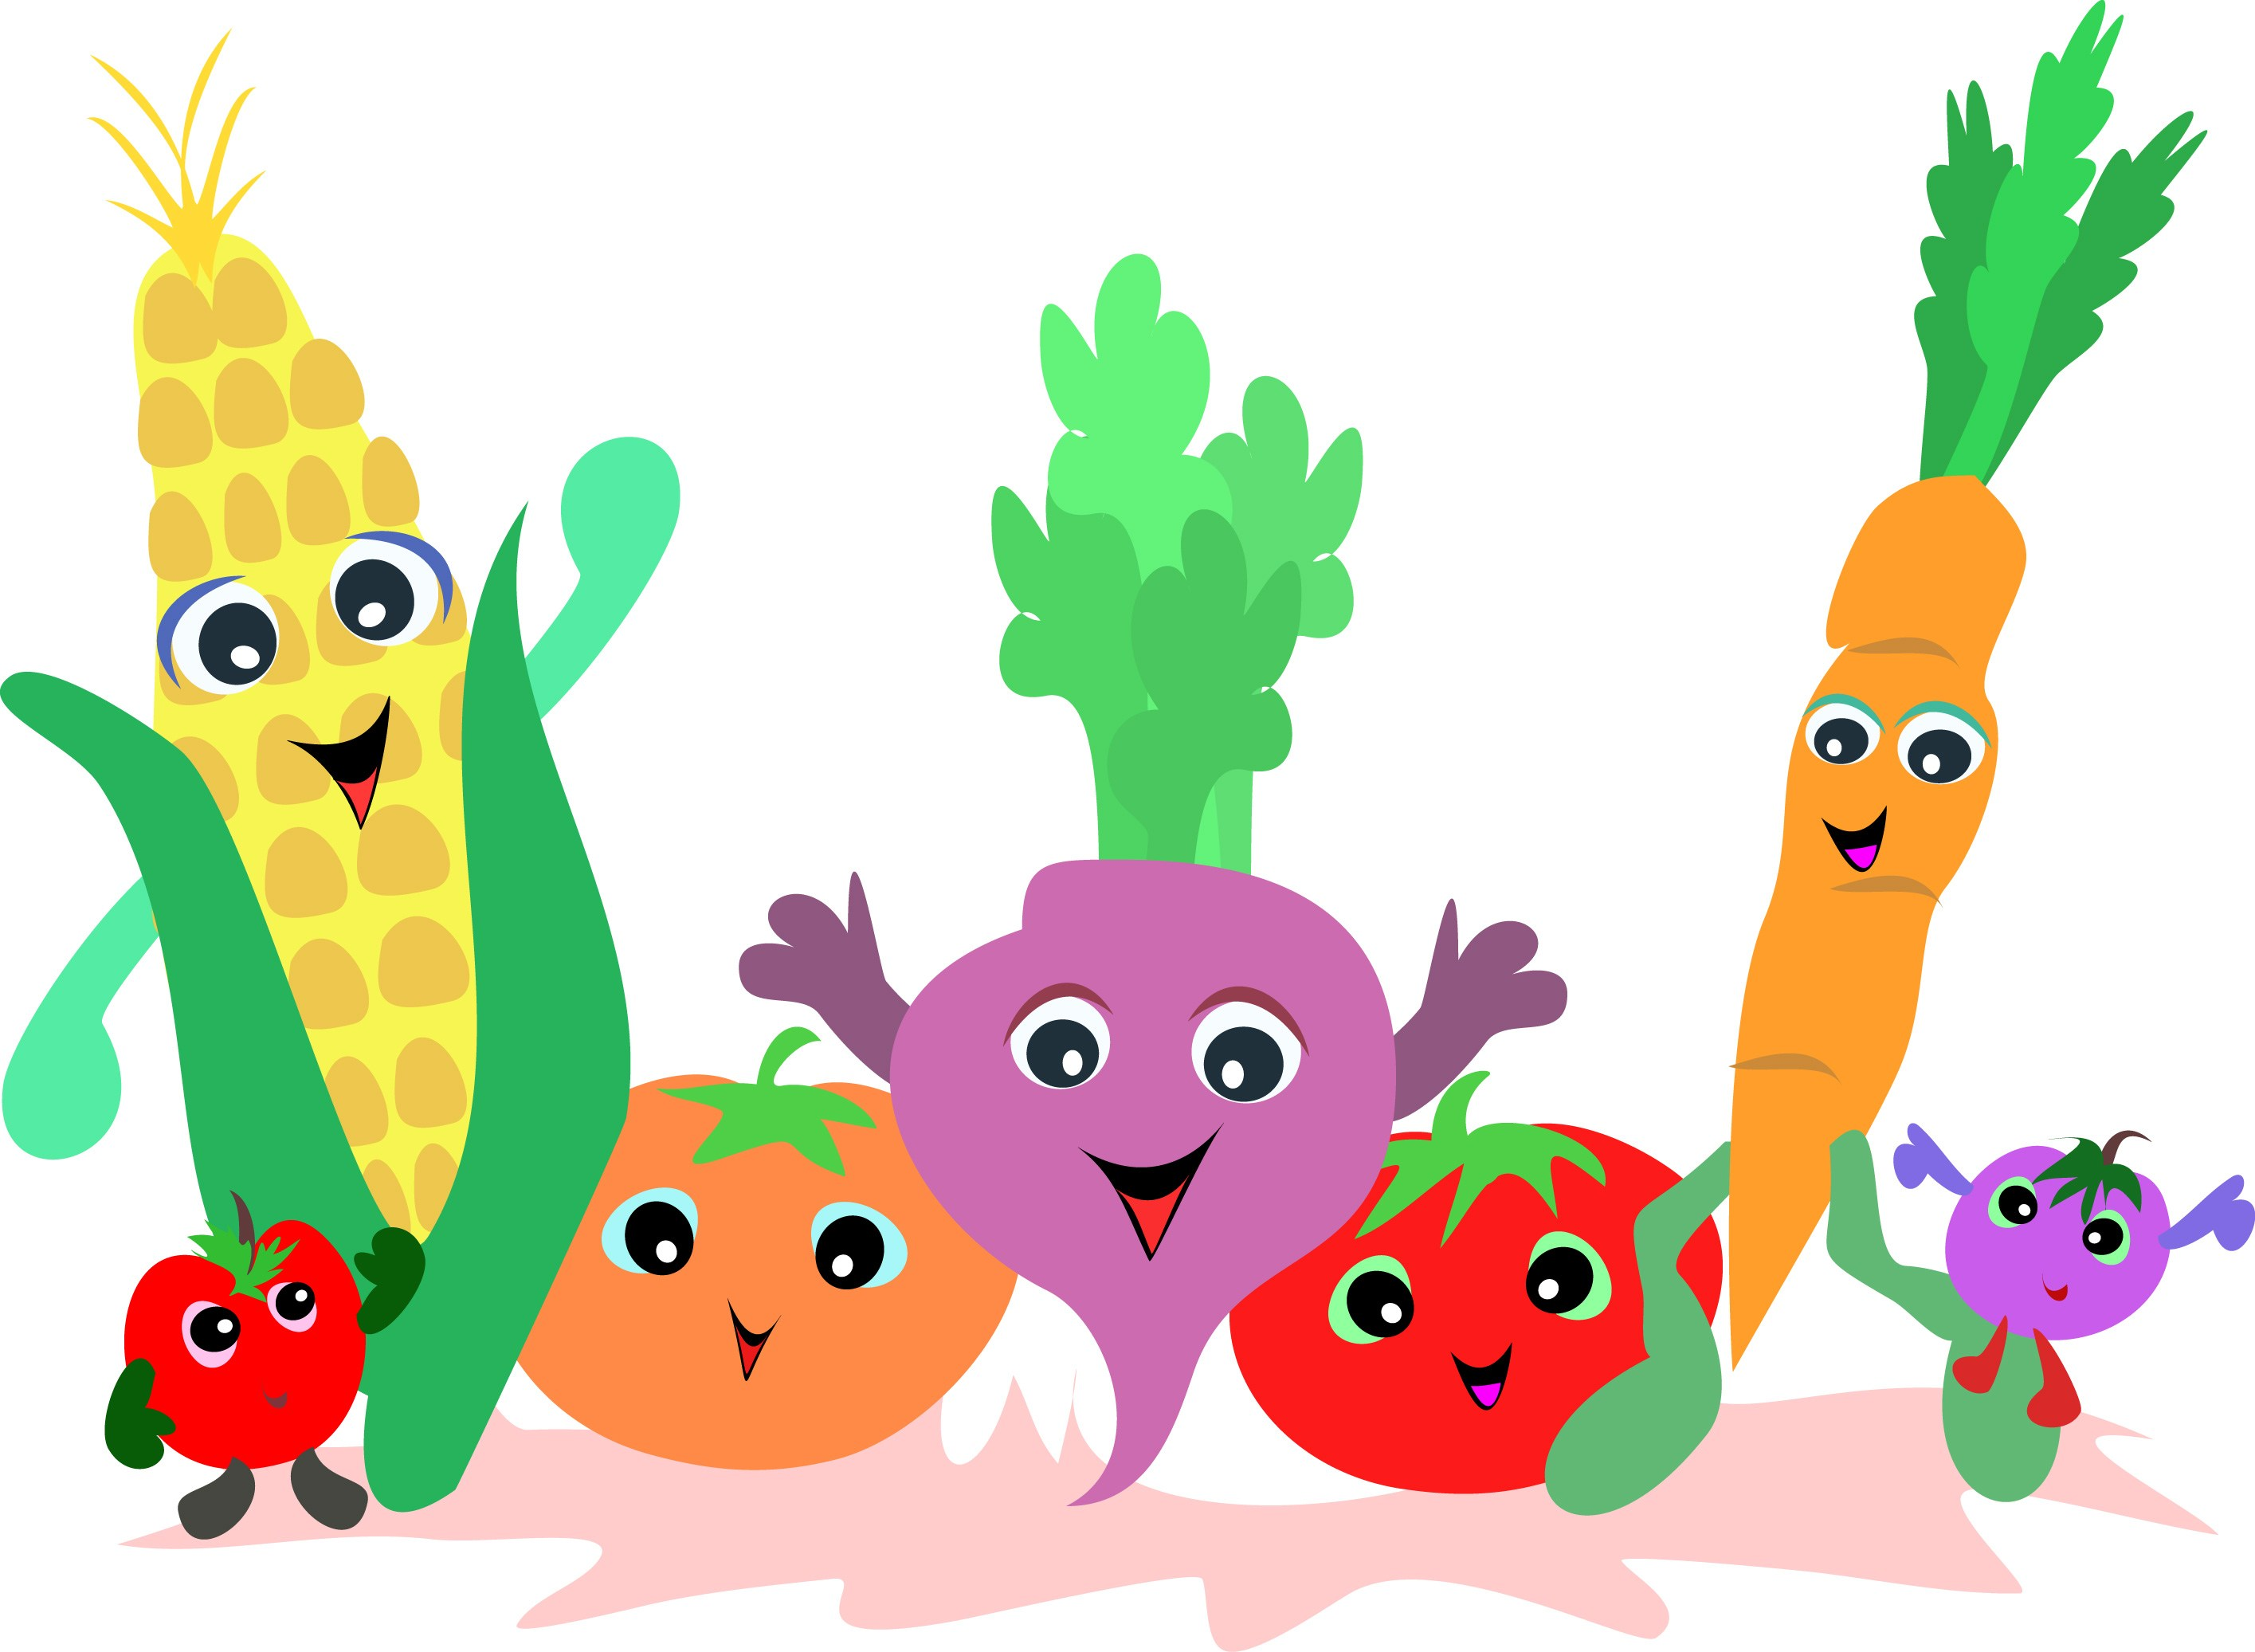 Fruits vegetables clipart 8 » Clipart Portal.